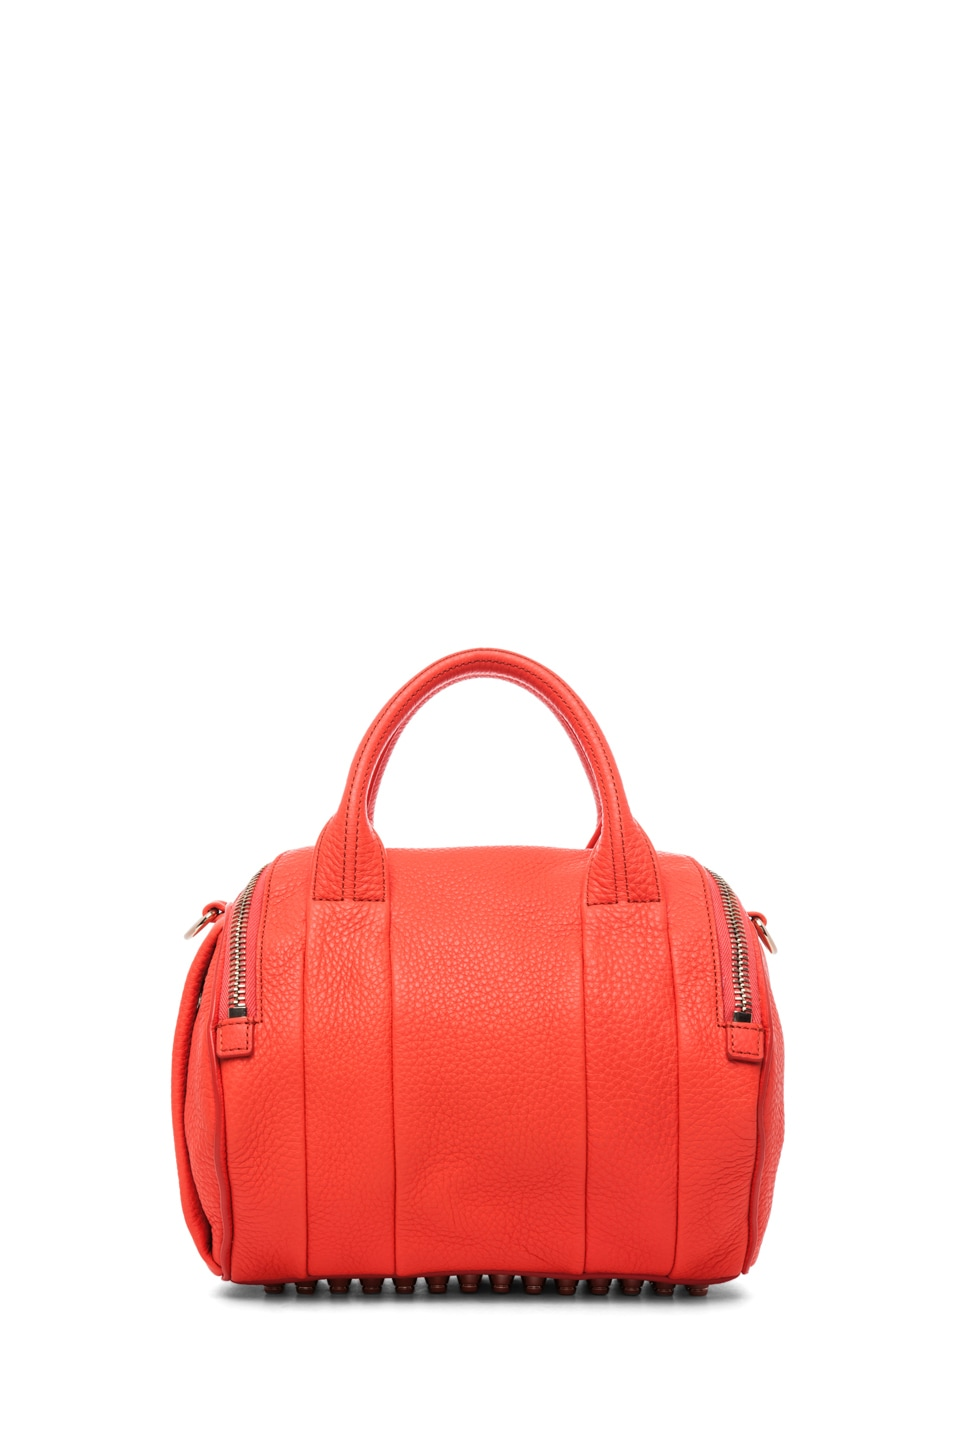 Image 2 of Alexander Wang Rockie Soft Pebble Leather Shoulder Bag in Tang